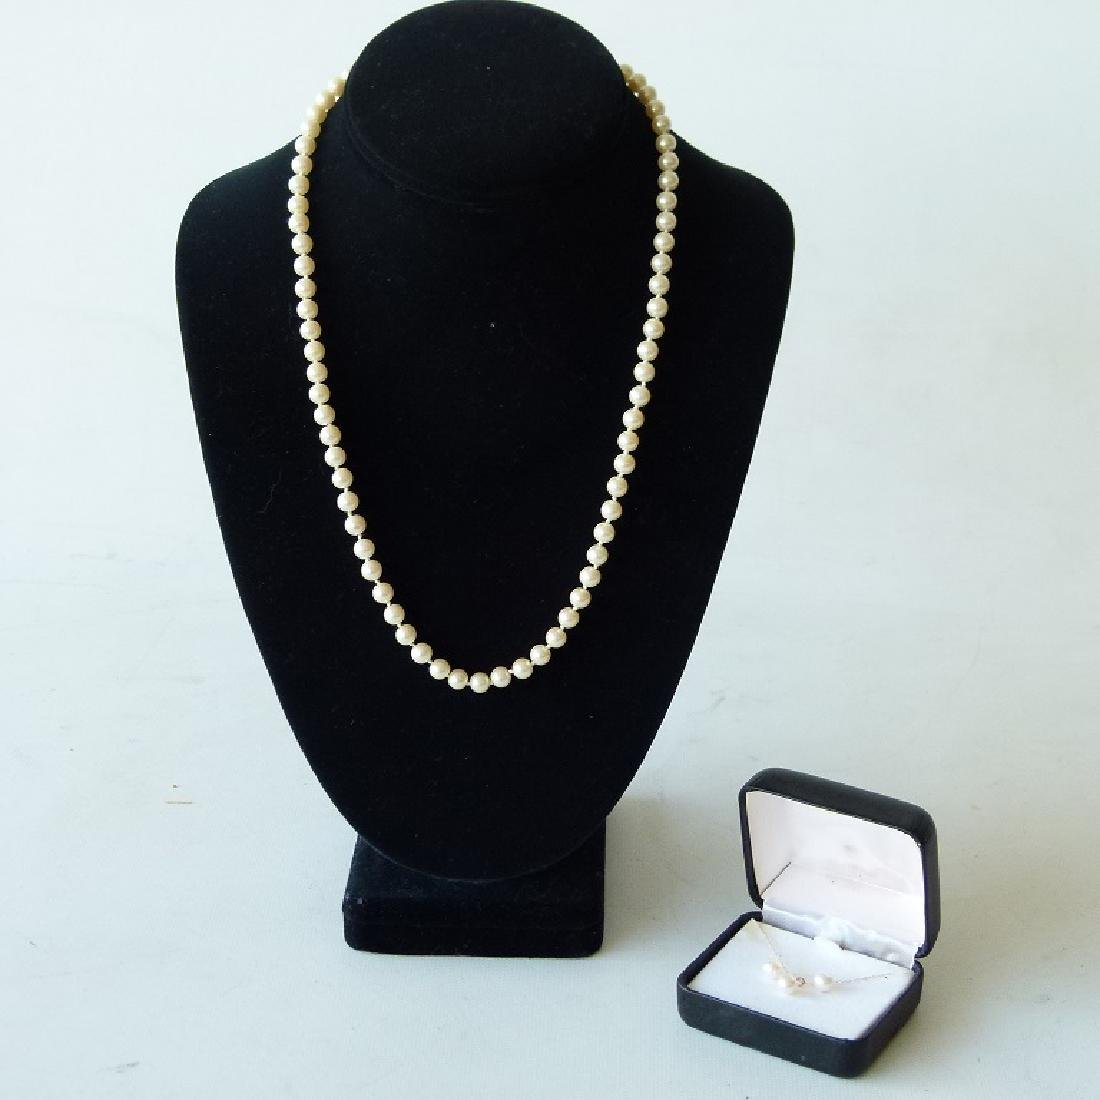 LOT (2) MODERN CULTURED 6MM PEARLS INCL. NECKLACE